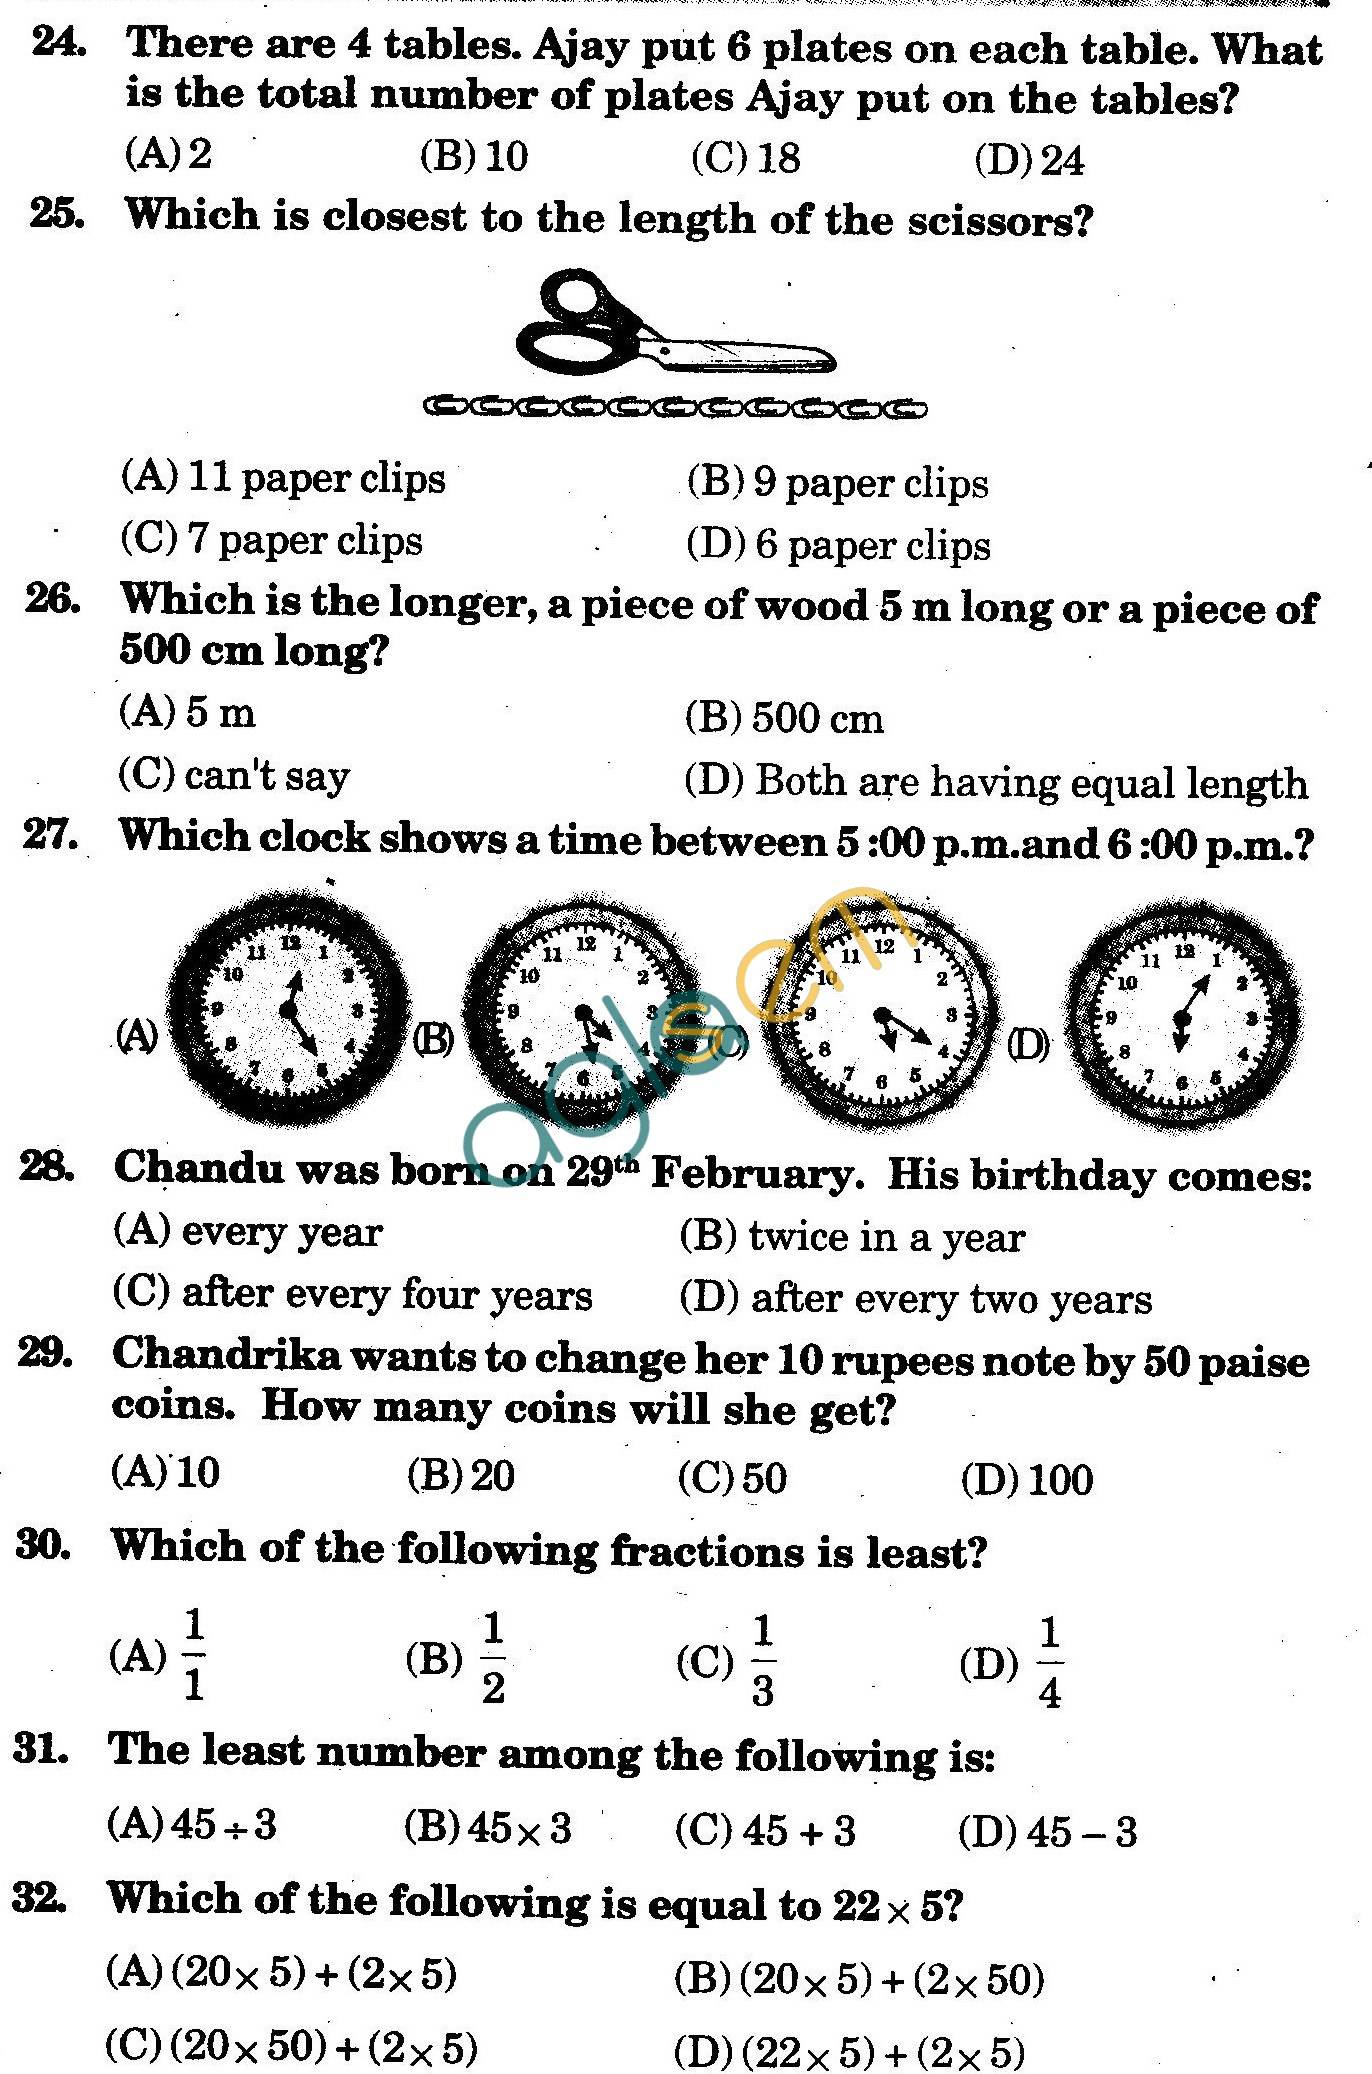 NSTSE 2009 Class III Question Paper with Answers - Mathematics